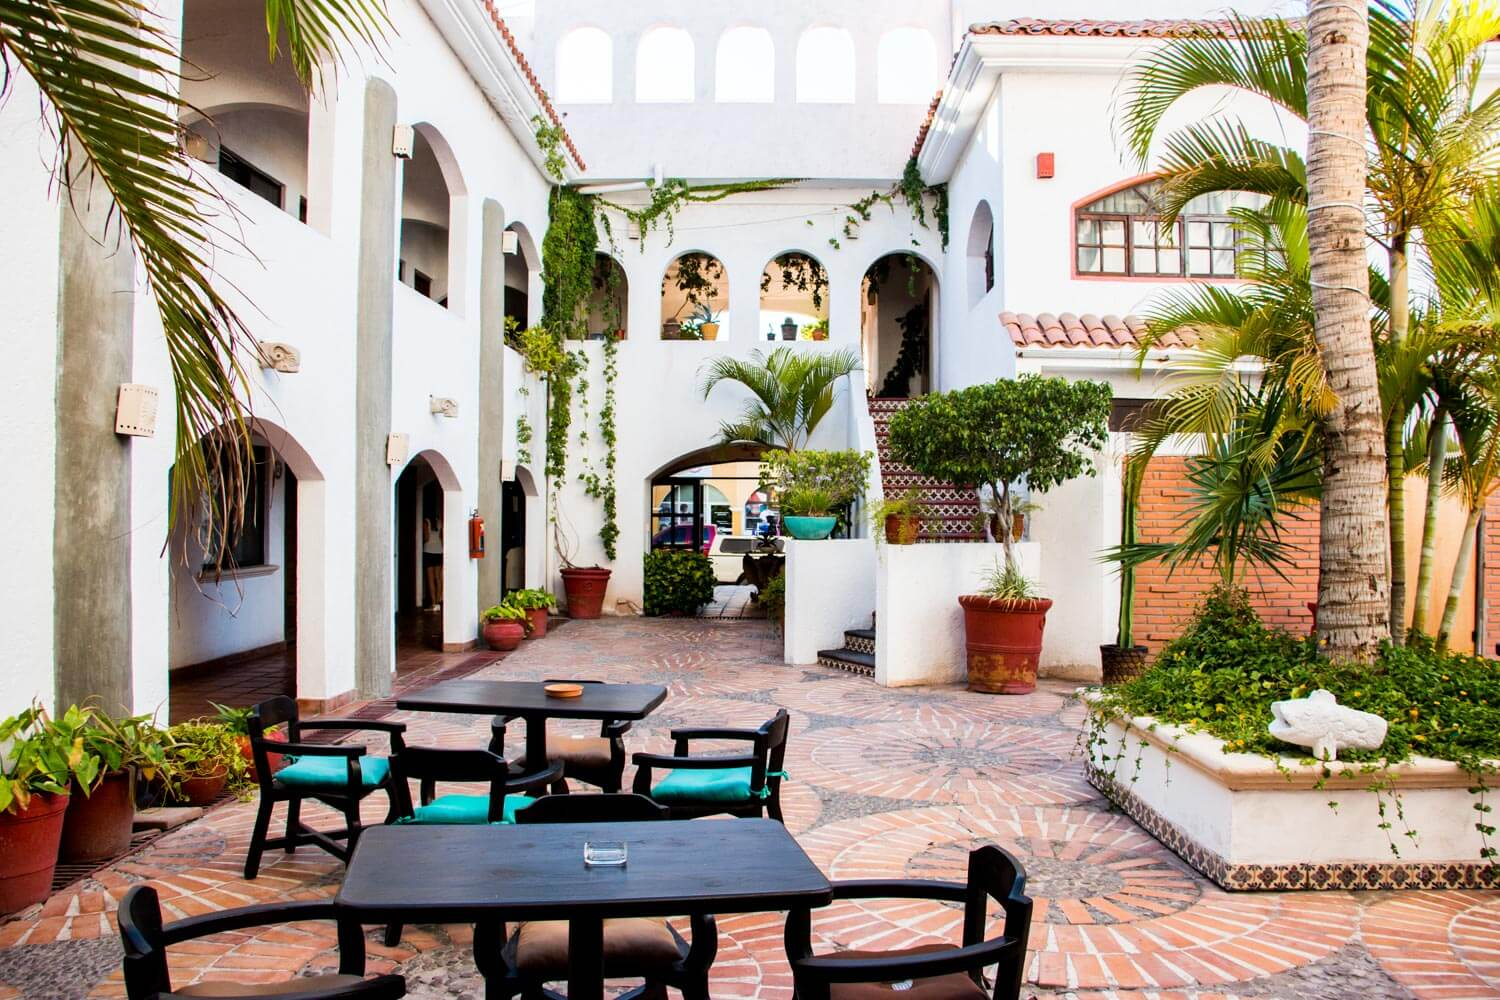 The courtyard of the Hotel Plaza Loreto.